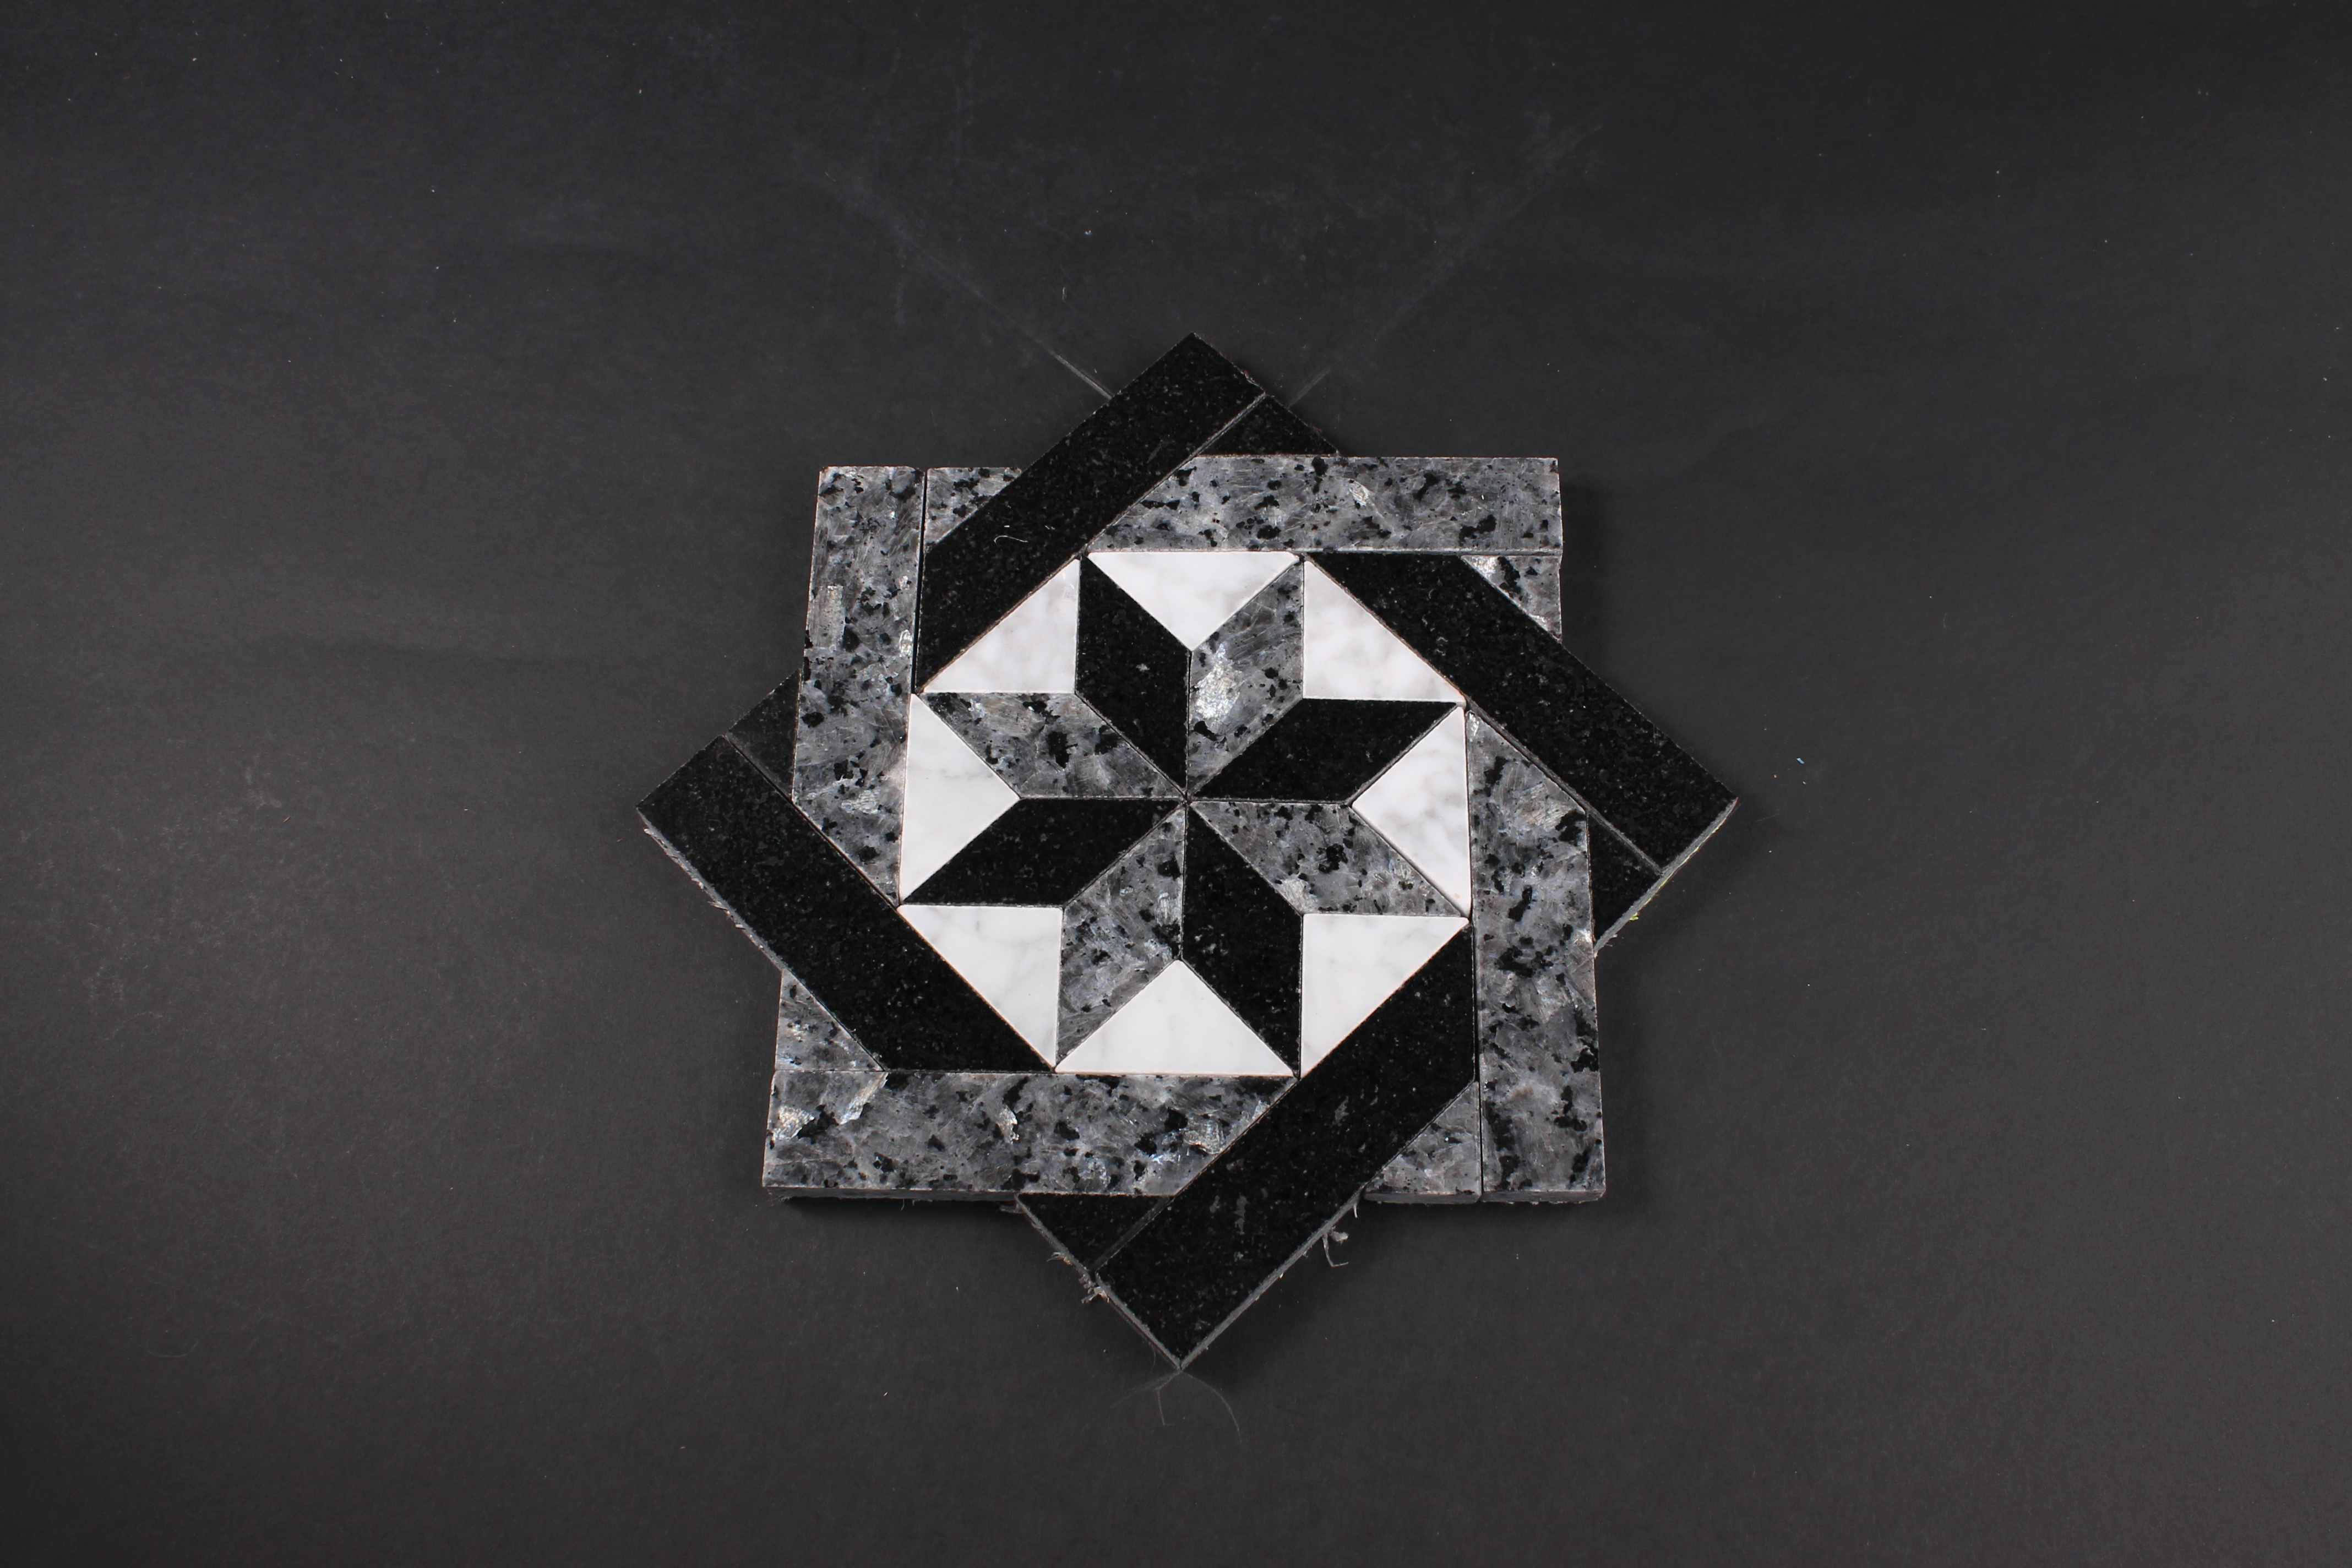 Tile decorative pieces in las vegas for your floors and walls decorative pieces make great tile even better dailygadgetfo Image collections